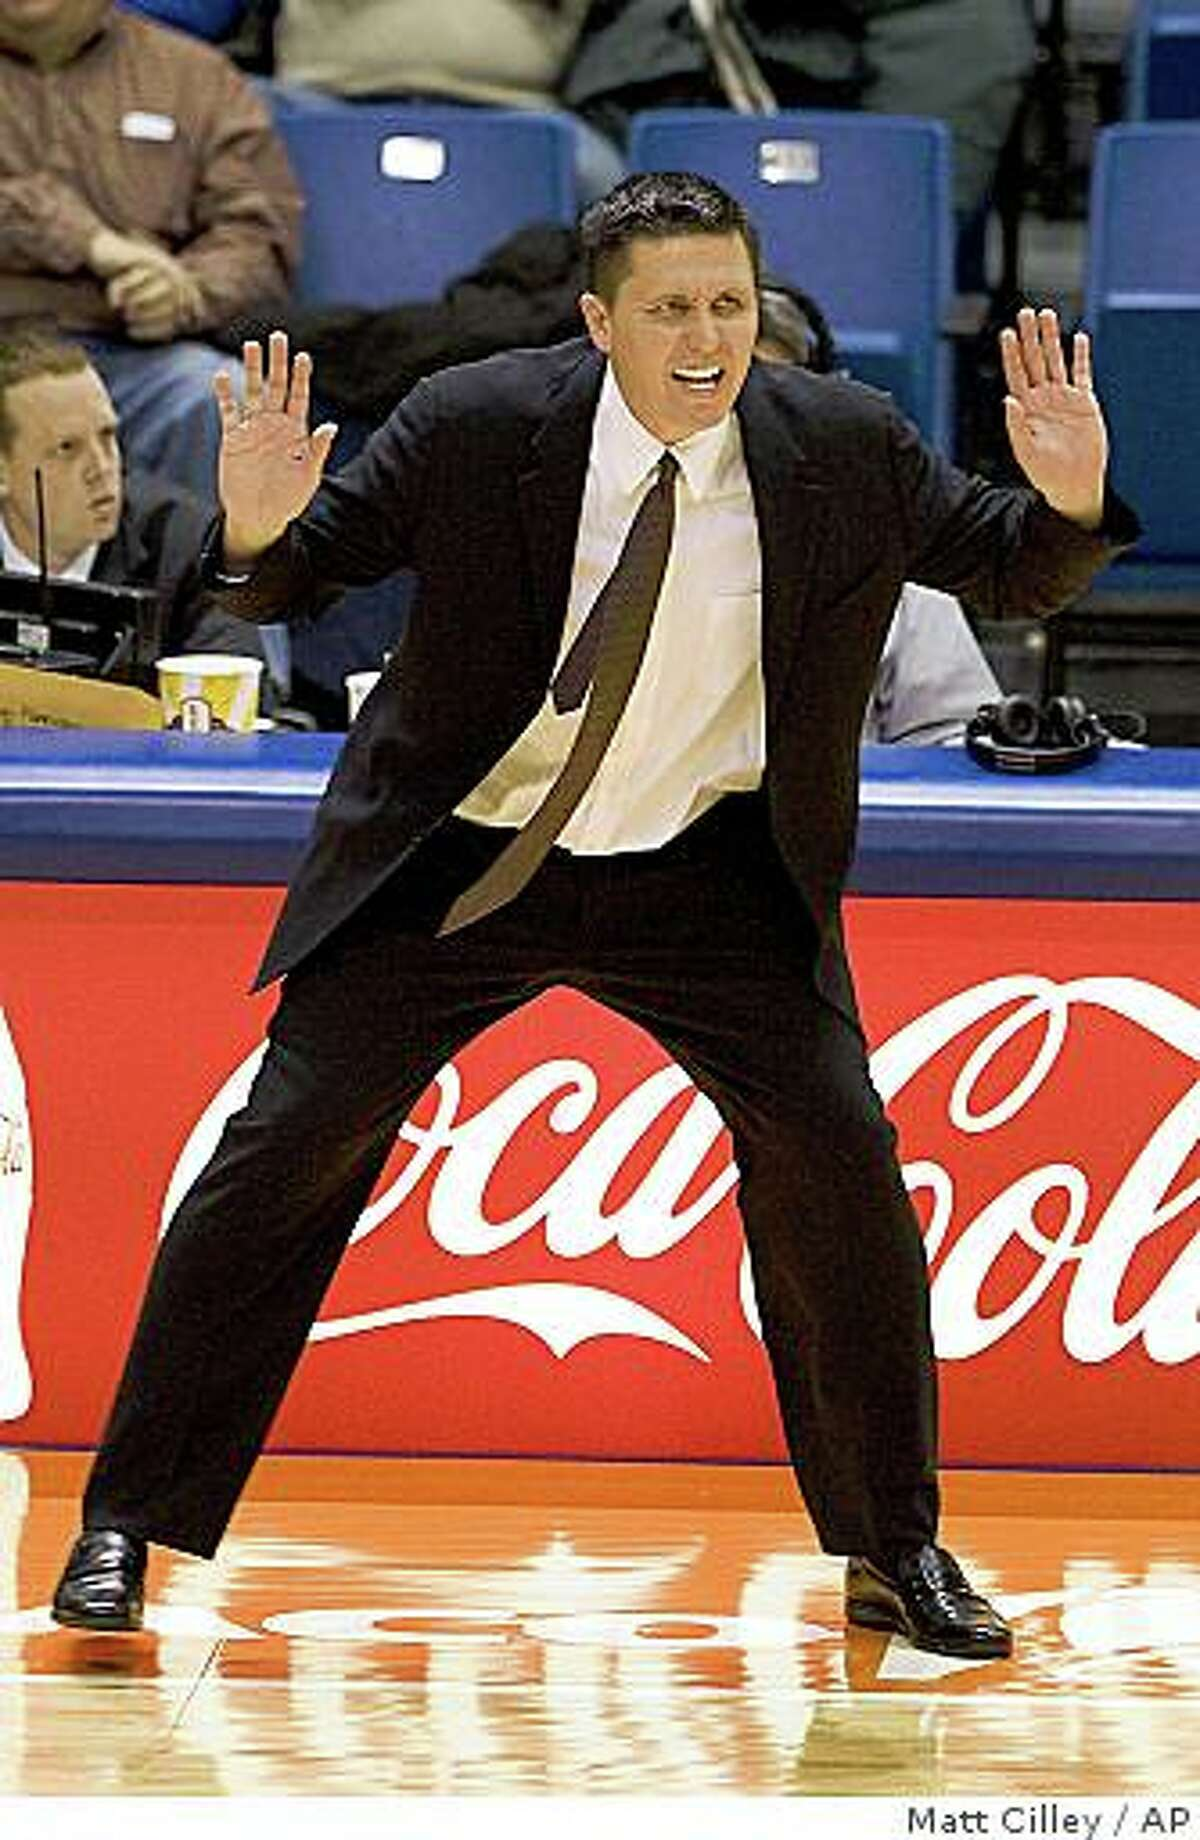 San Francisco head coach Rex Walters talks to his players as they play against Boise State during the first half of an NCAA college basketball game on Saturday, Dec. 13, 2008, in Boise, Idaho. (AP Photo/Matt Cilley)